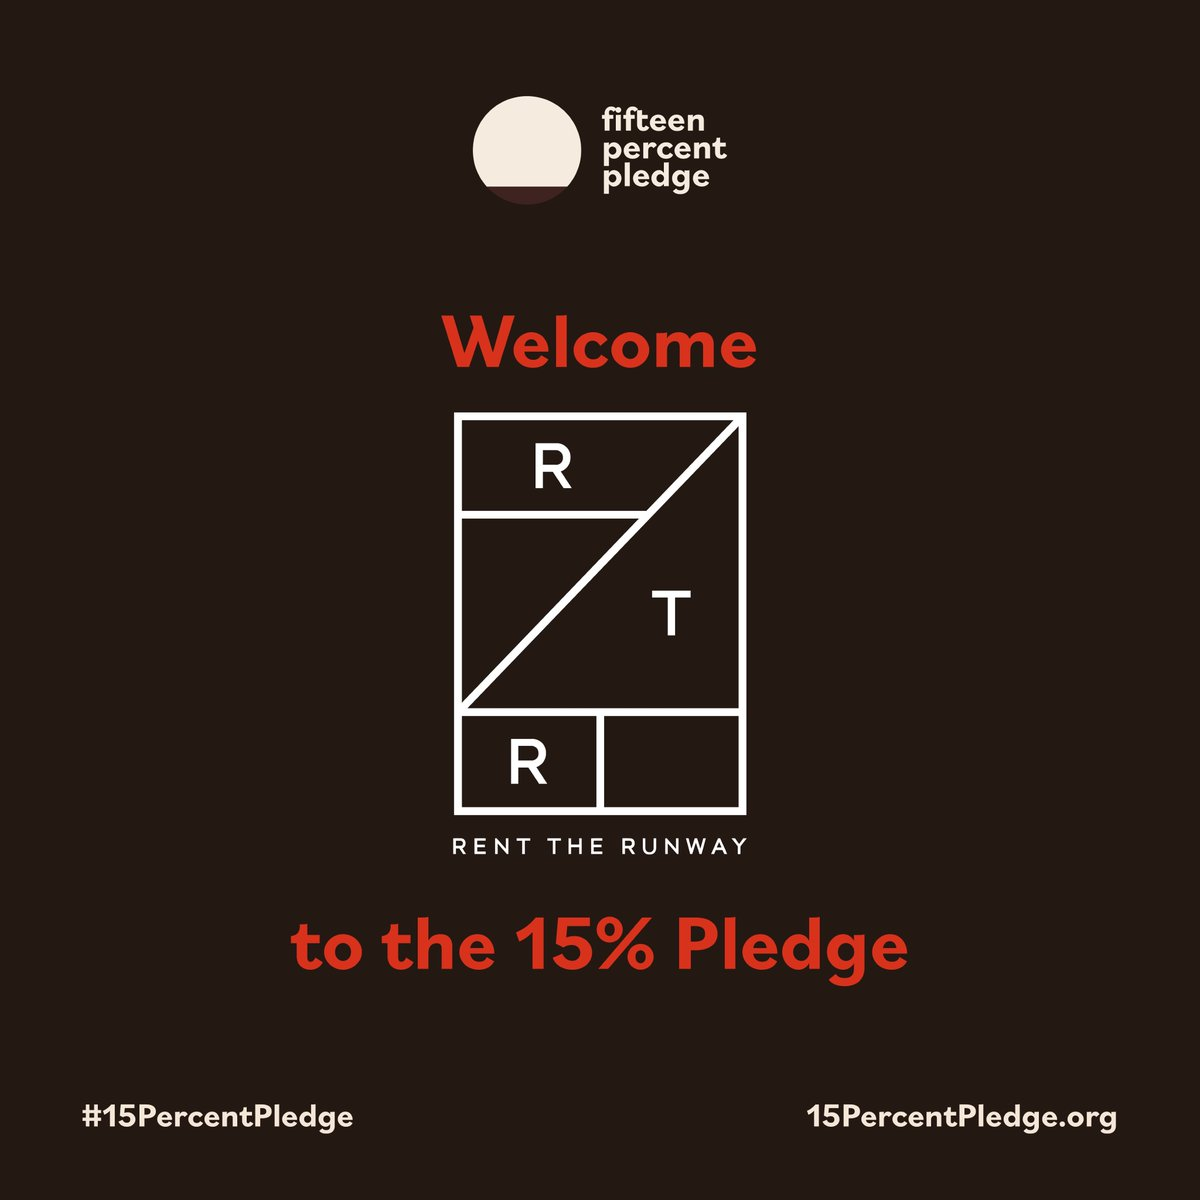 Today we are so excited to announce that @RenttheRunway has taken the #15PercentPledge! https://t.co/xpGRpqXvzT